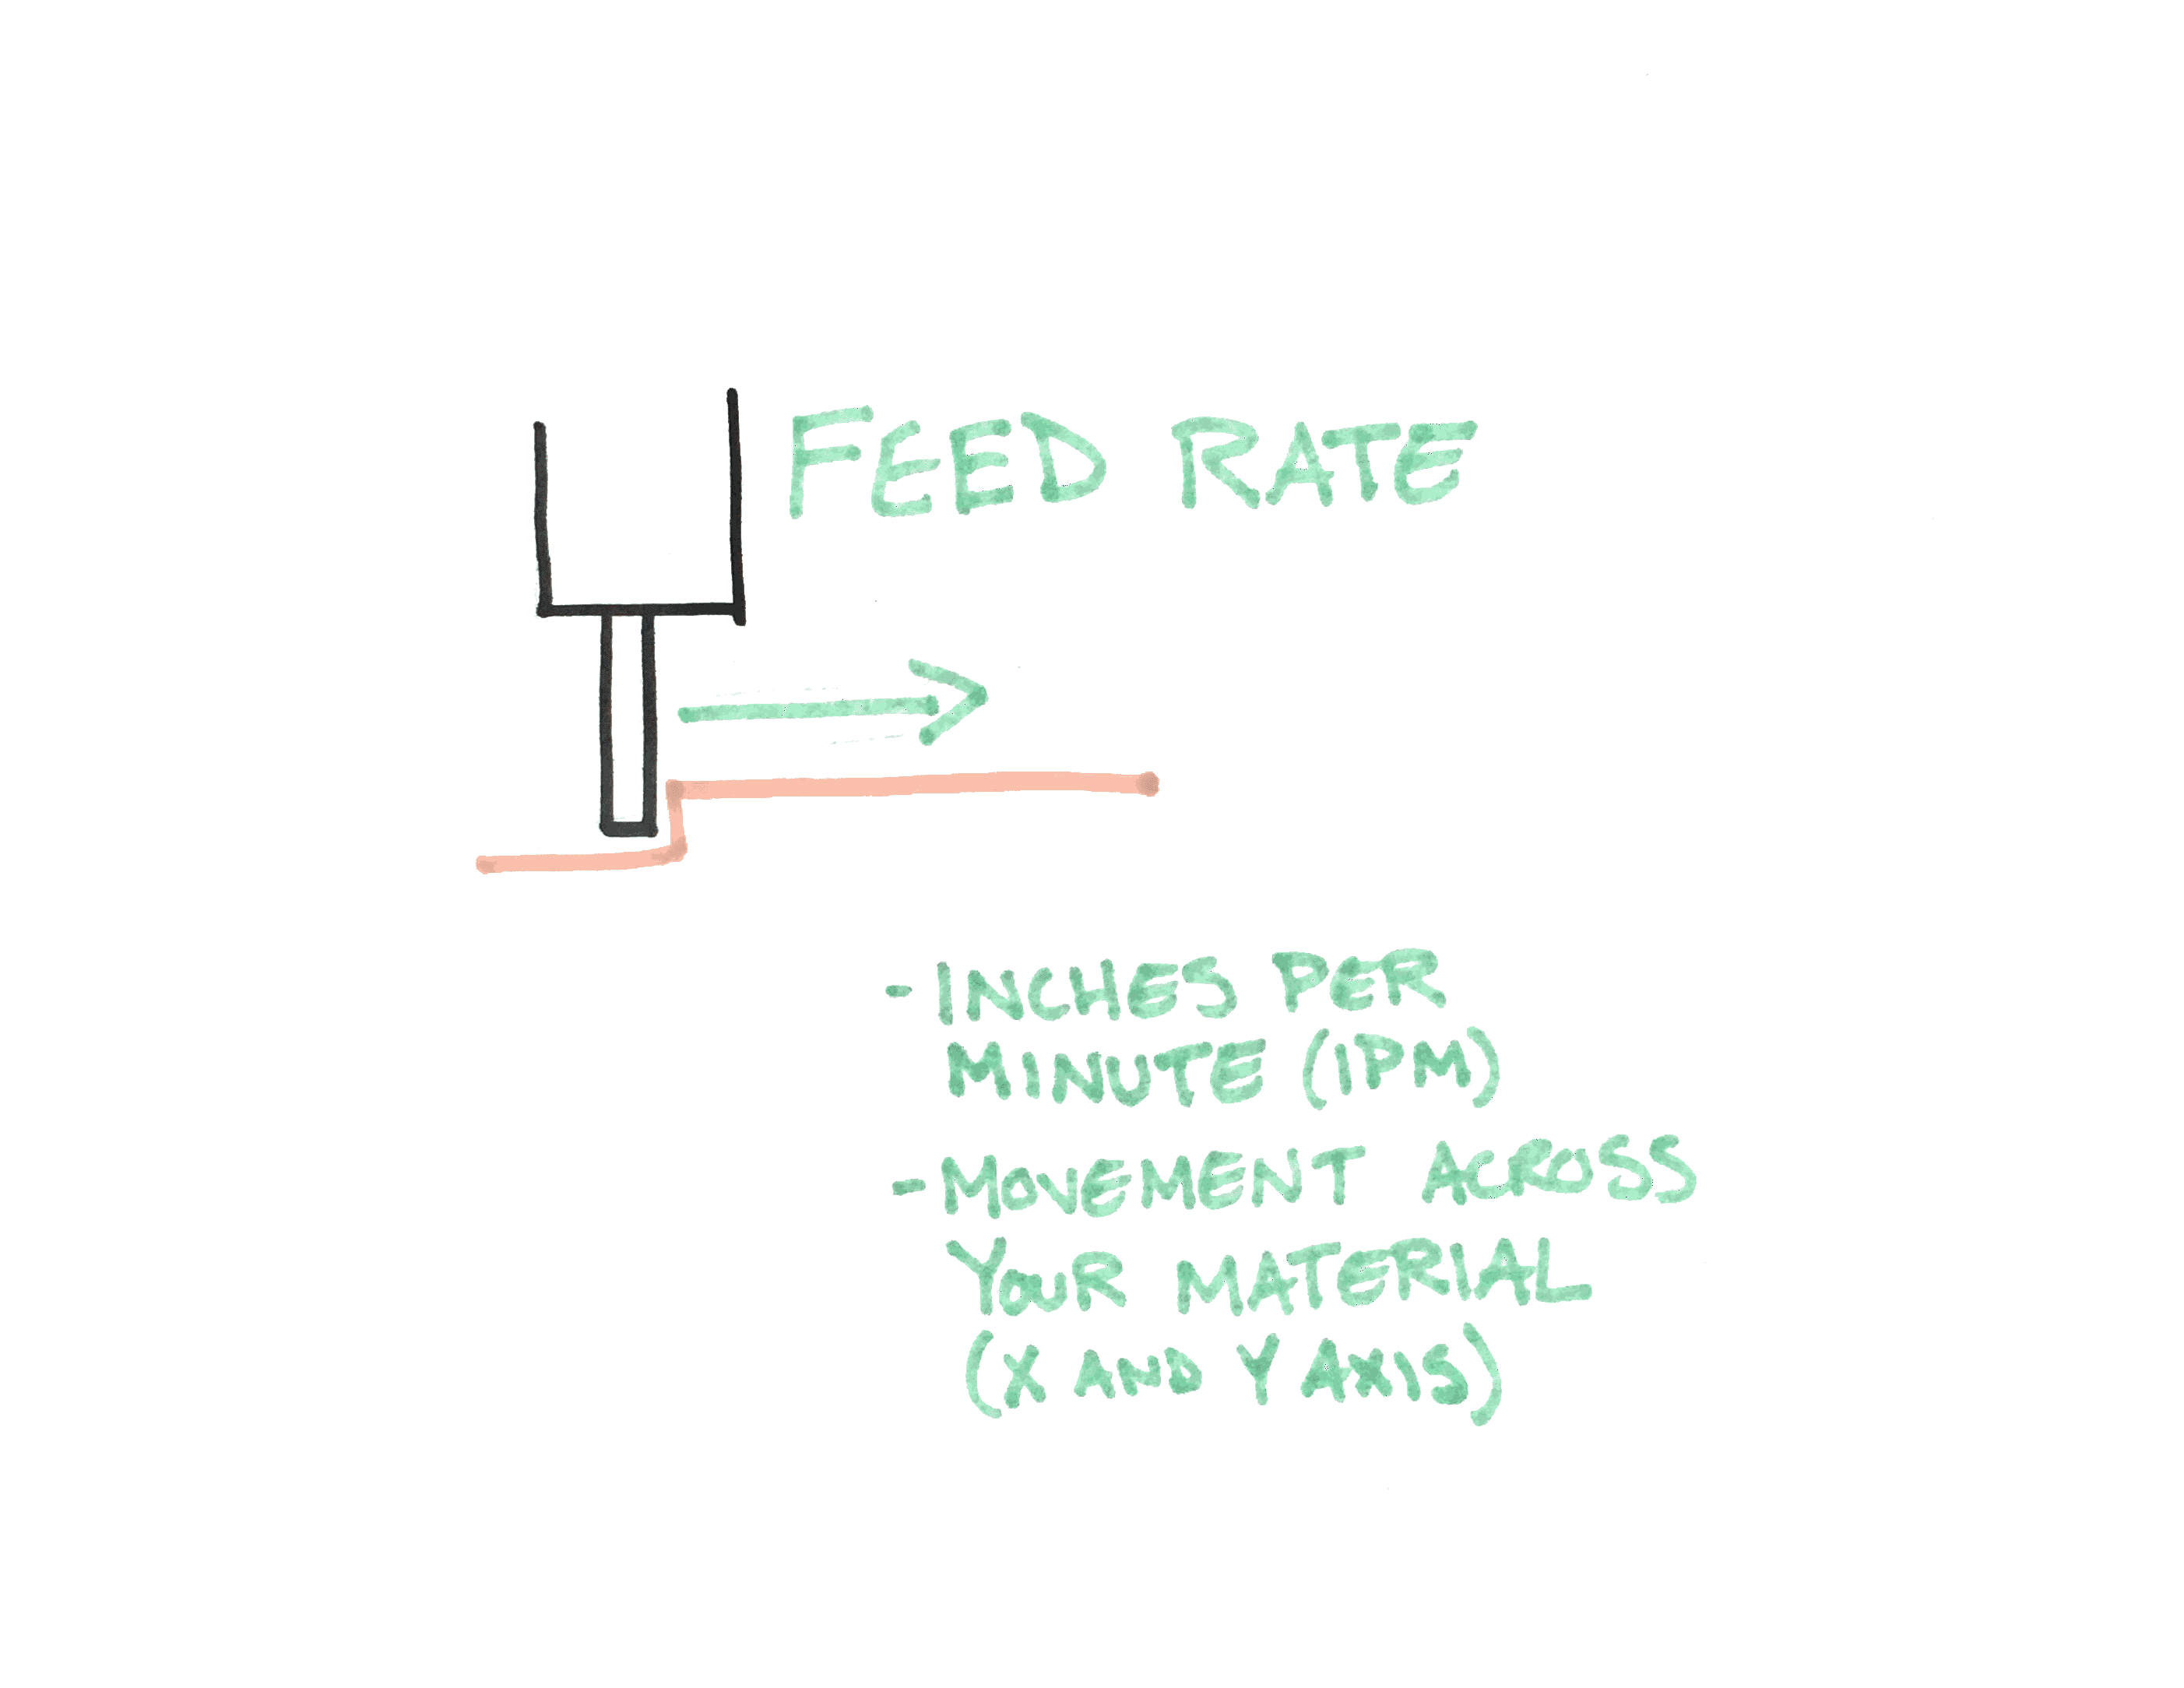 feedrate.png